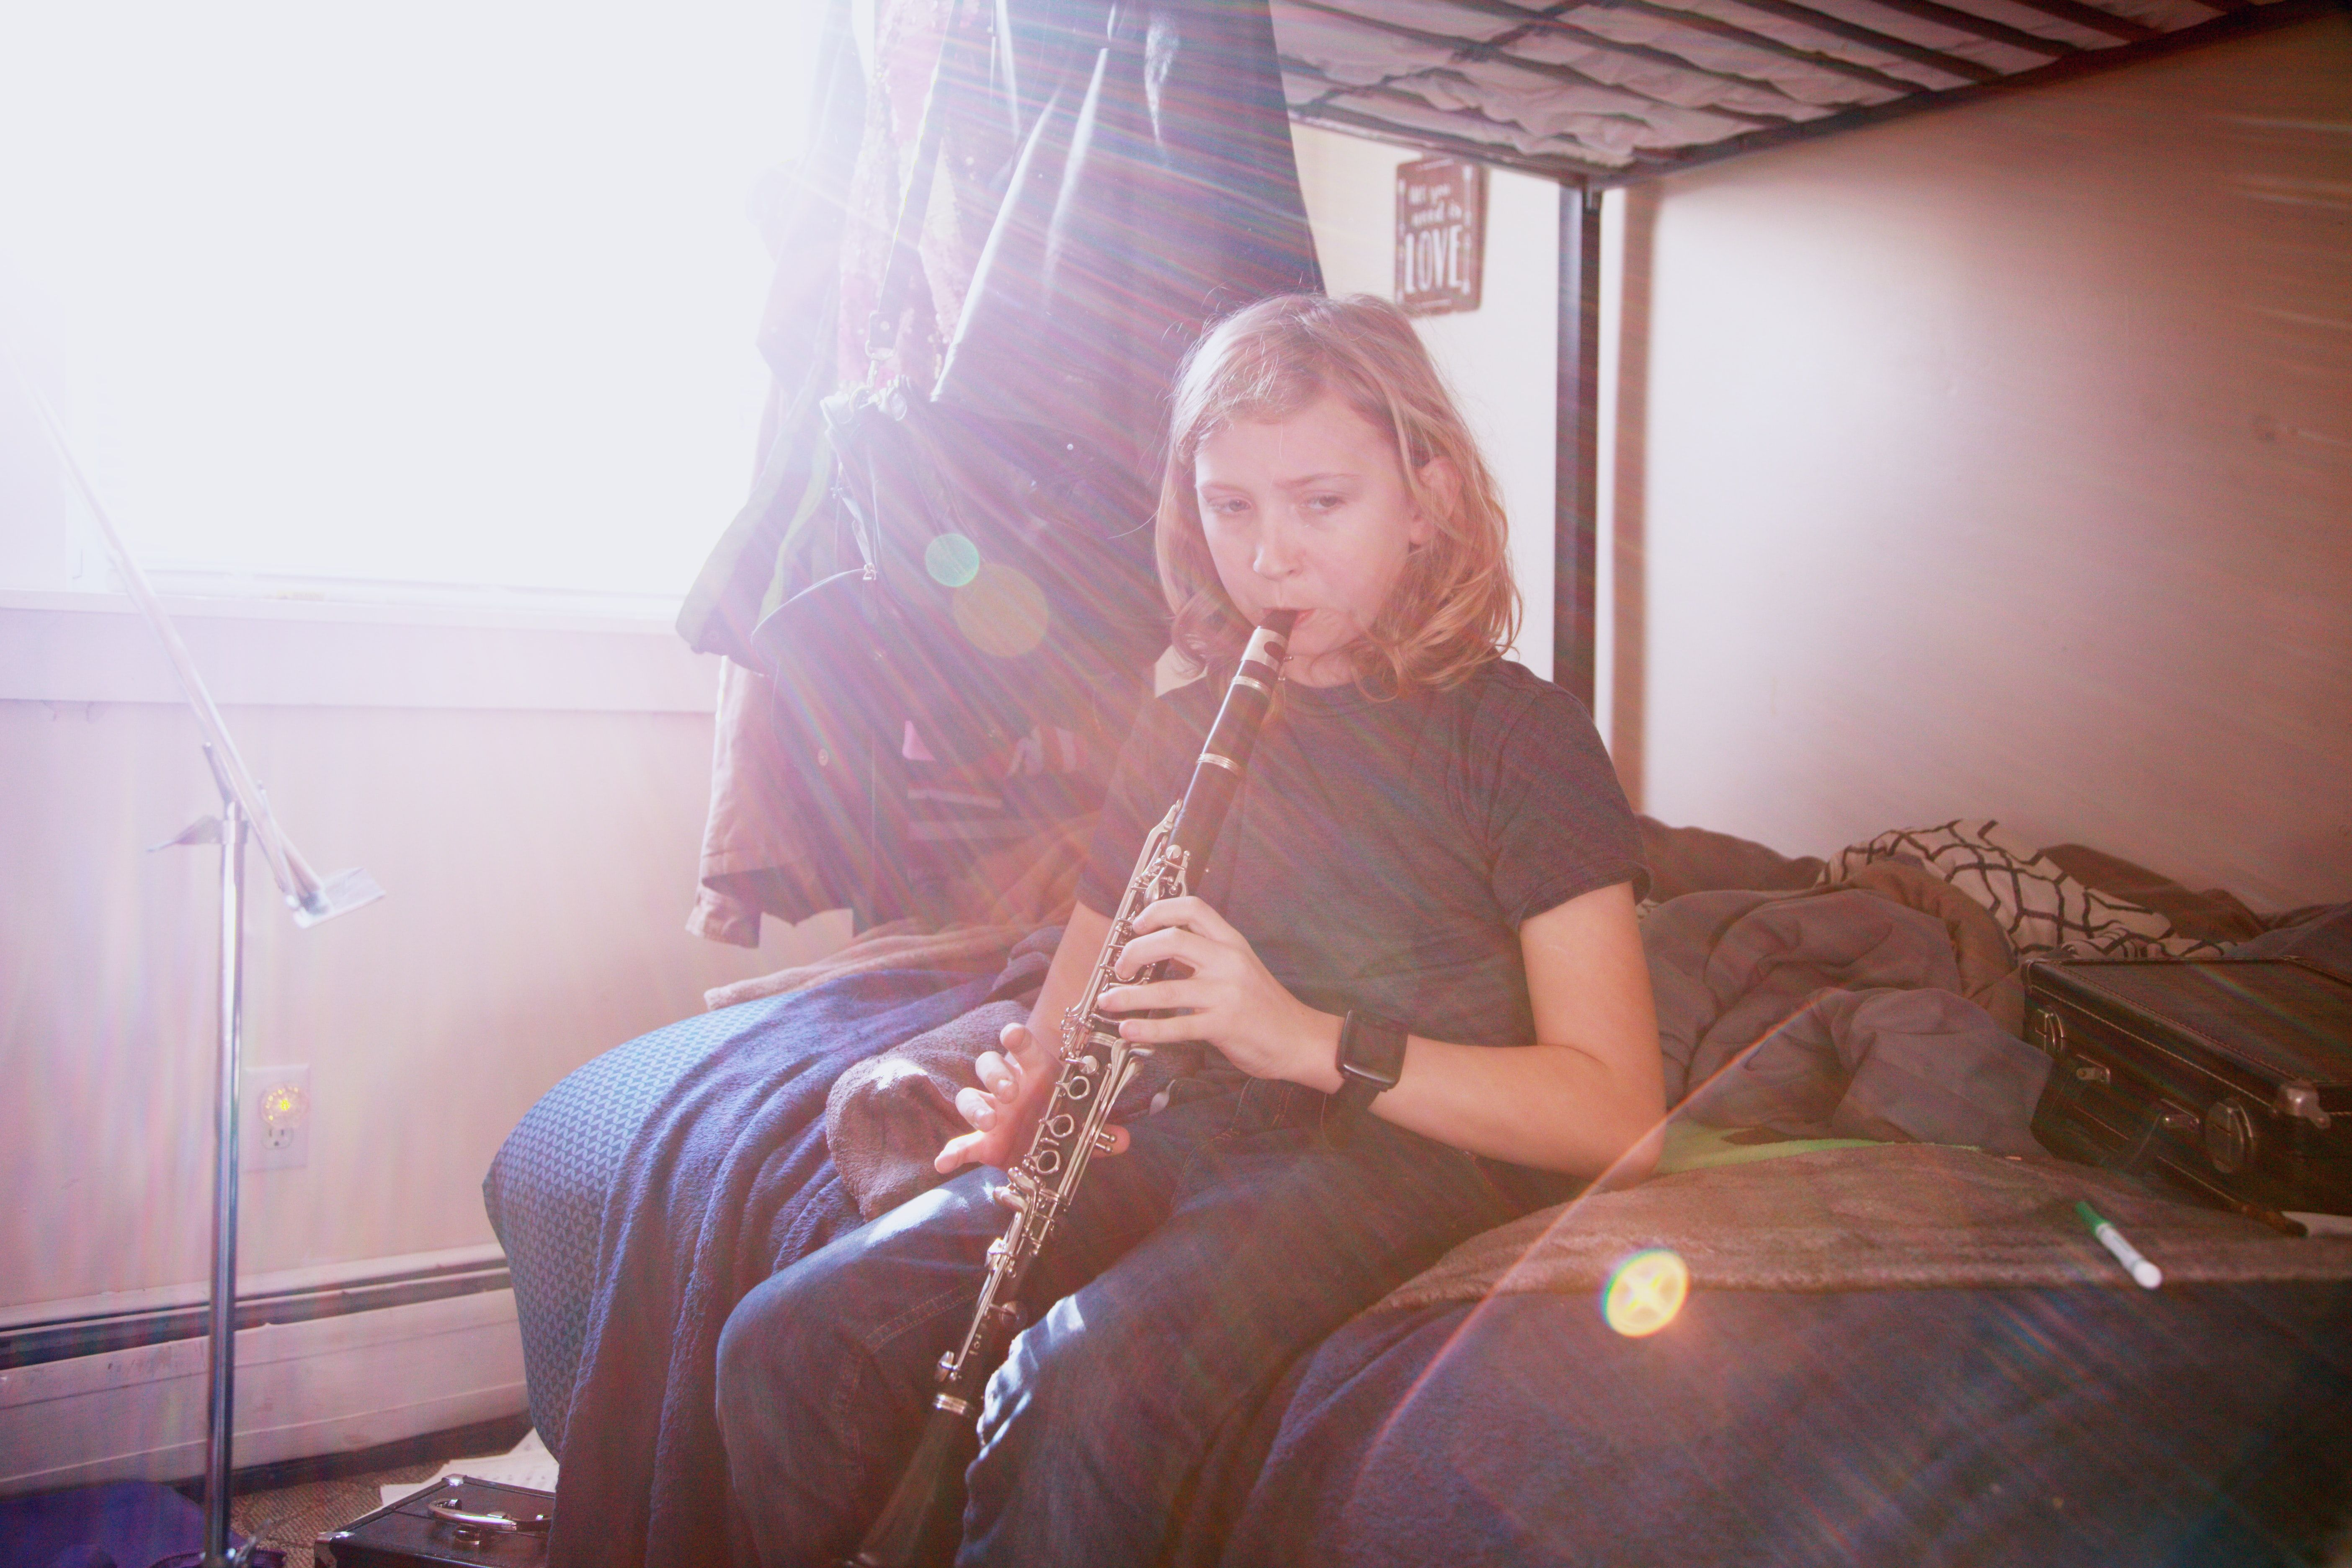 Image of a girl playing the clarinet.